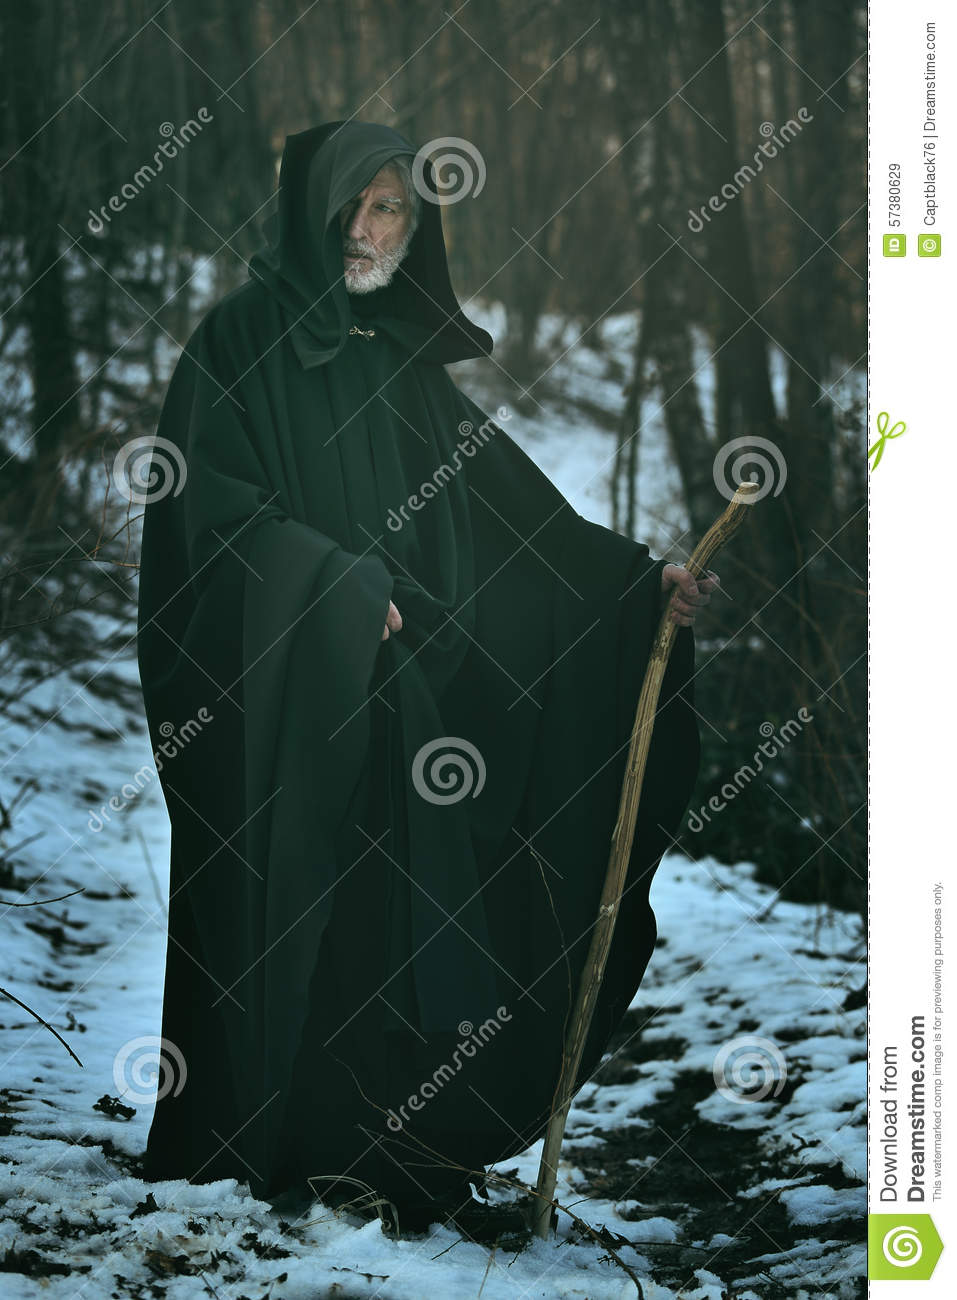 Old Wise Man With Staff In The Wood Stock Image Image Of Power Wand 57380629